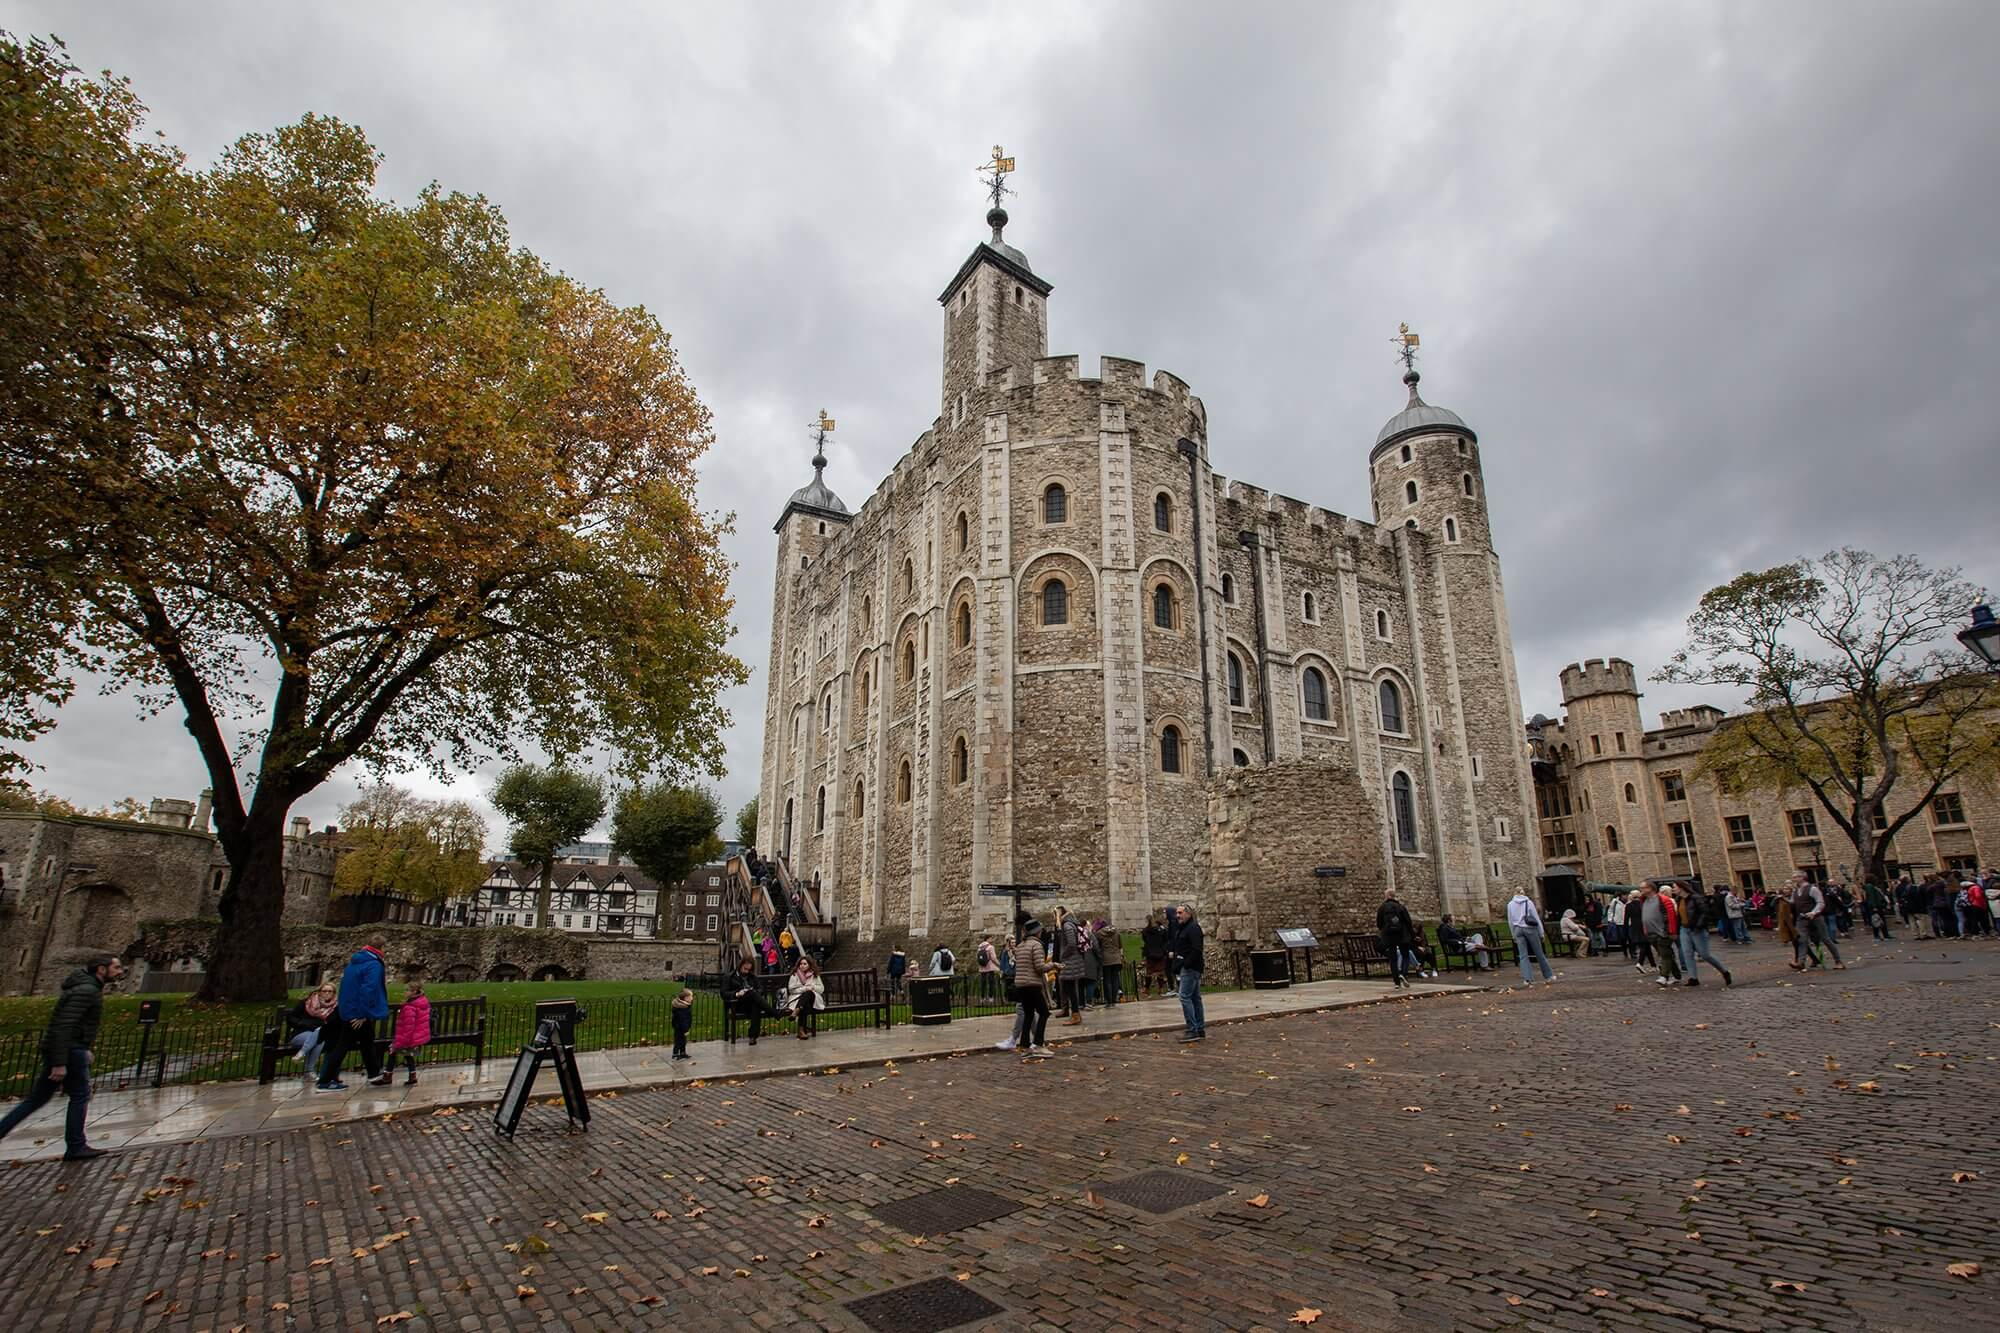 An outside image of tower of london